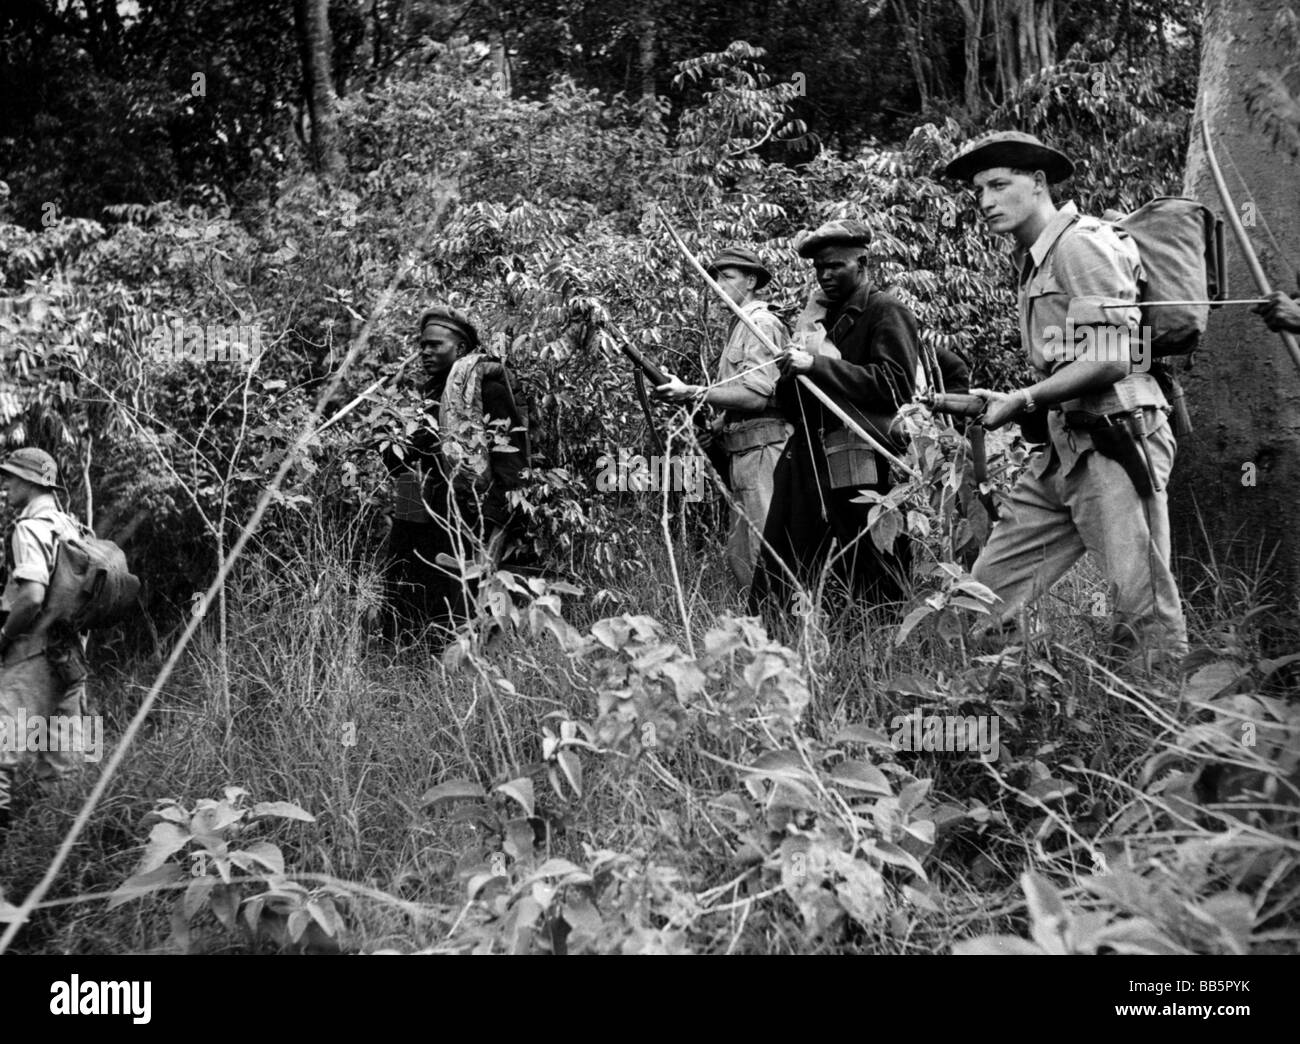 geography/travel, Kenya, politics, Mau Mau Uprising, 1951 - 1955, British and African soldiers, during patrol, near - Stock Image